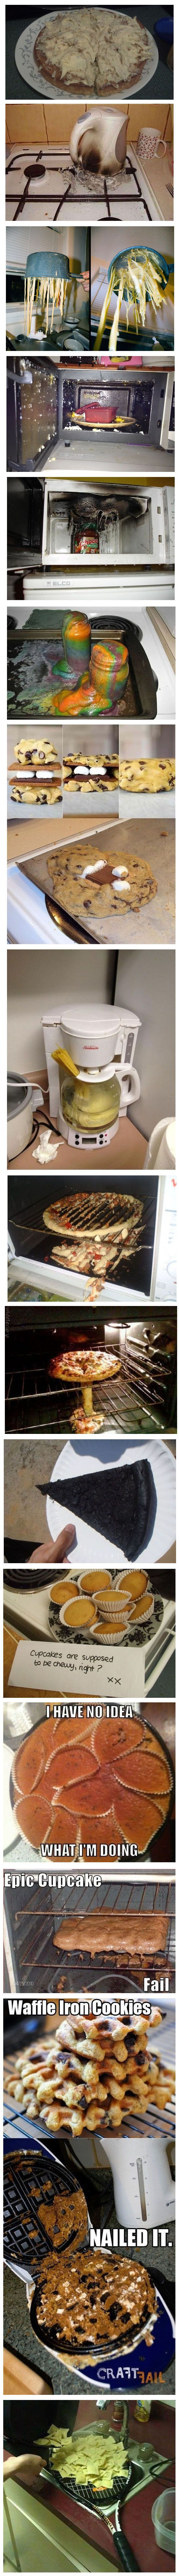 People who cook worse than you... hahaha this made me feel SO much better about burning water. XD